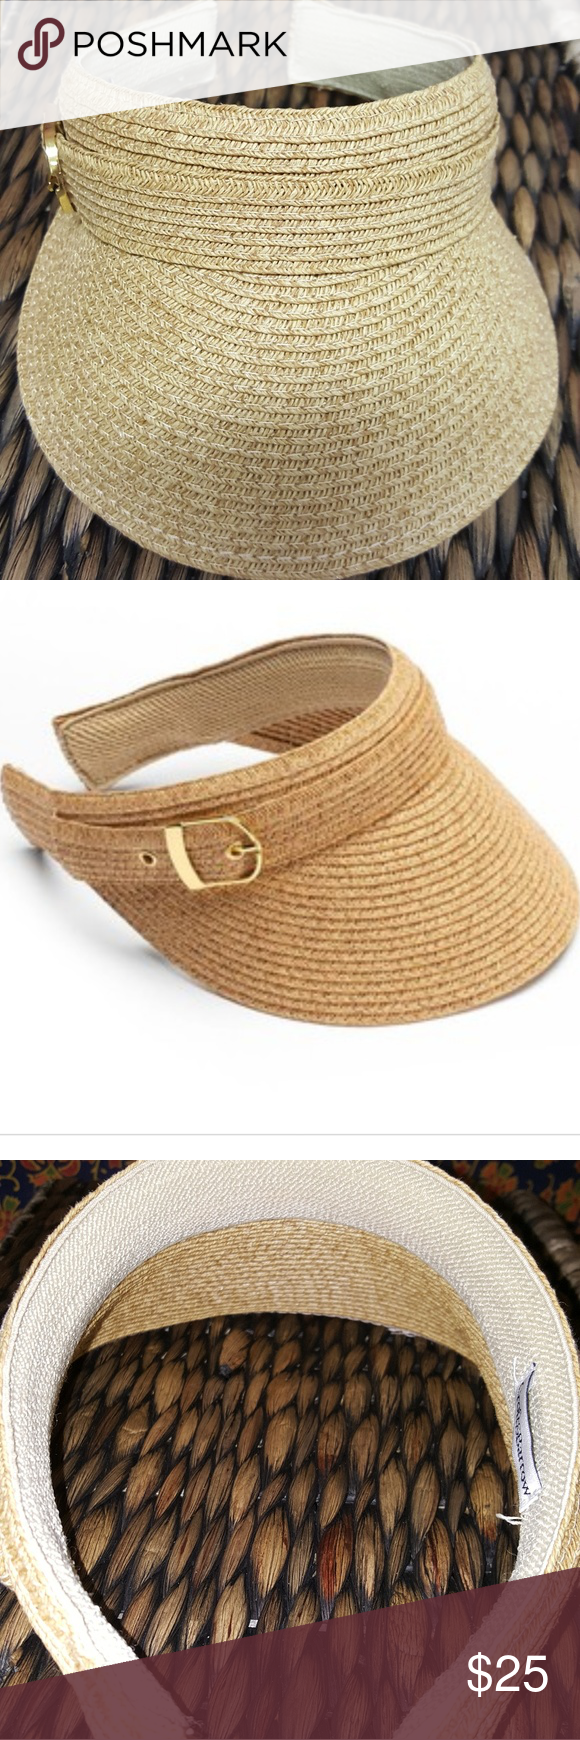 6040b6454b2 CROFT   BARROW WOVEN BUCKLE VISOR DURABLE WOVEN STRAW VISOR GREAT FOR A DAY  OUT IN